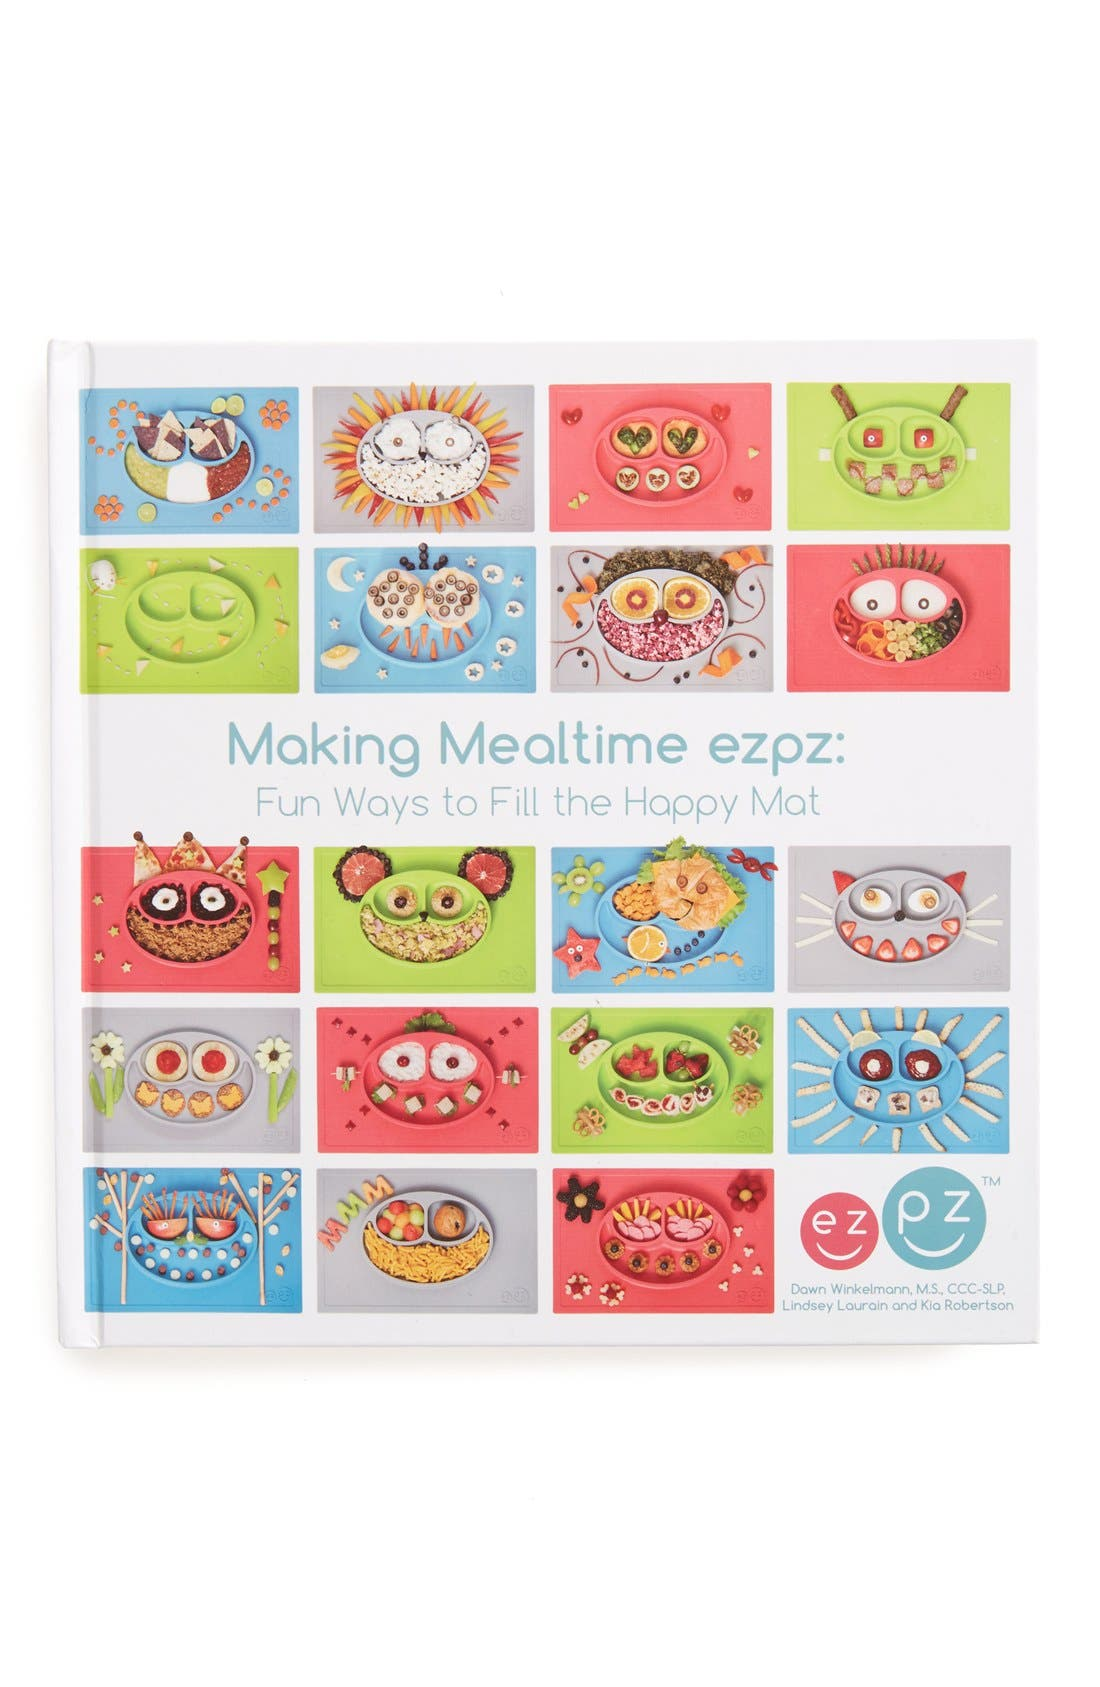 Alternate Image 1 Selected - Making Mealtime ezpz: Fun Ways to Fill the Happy Mat Book